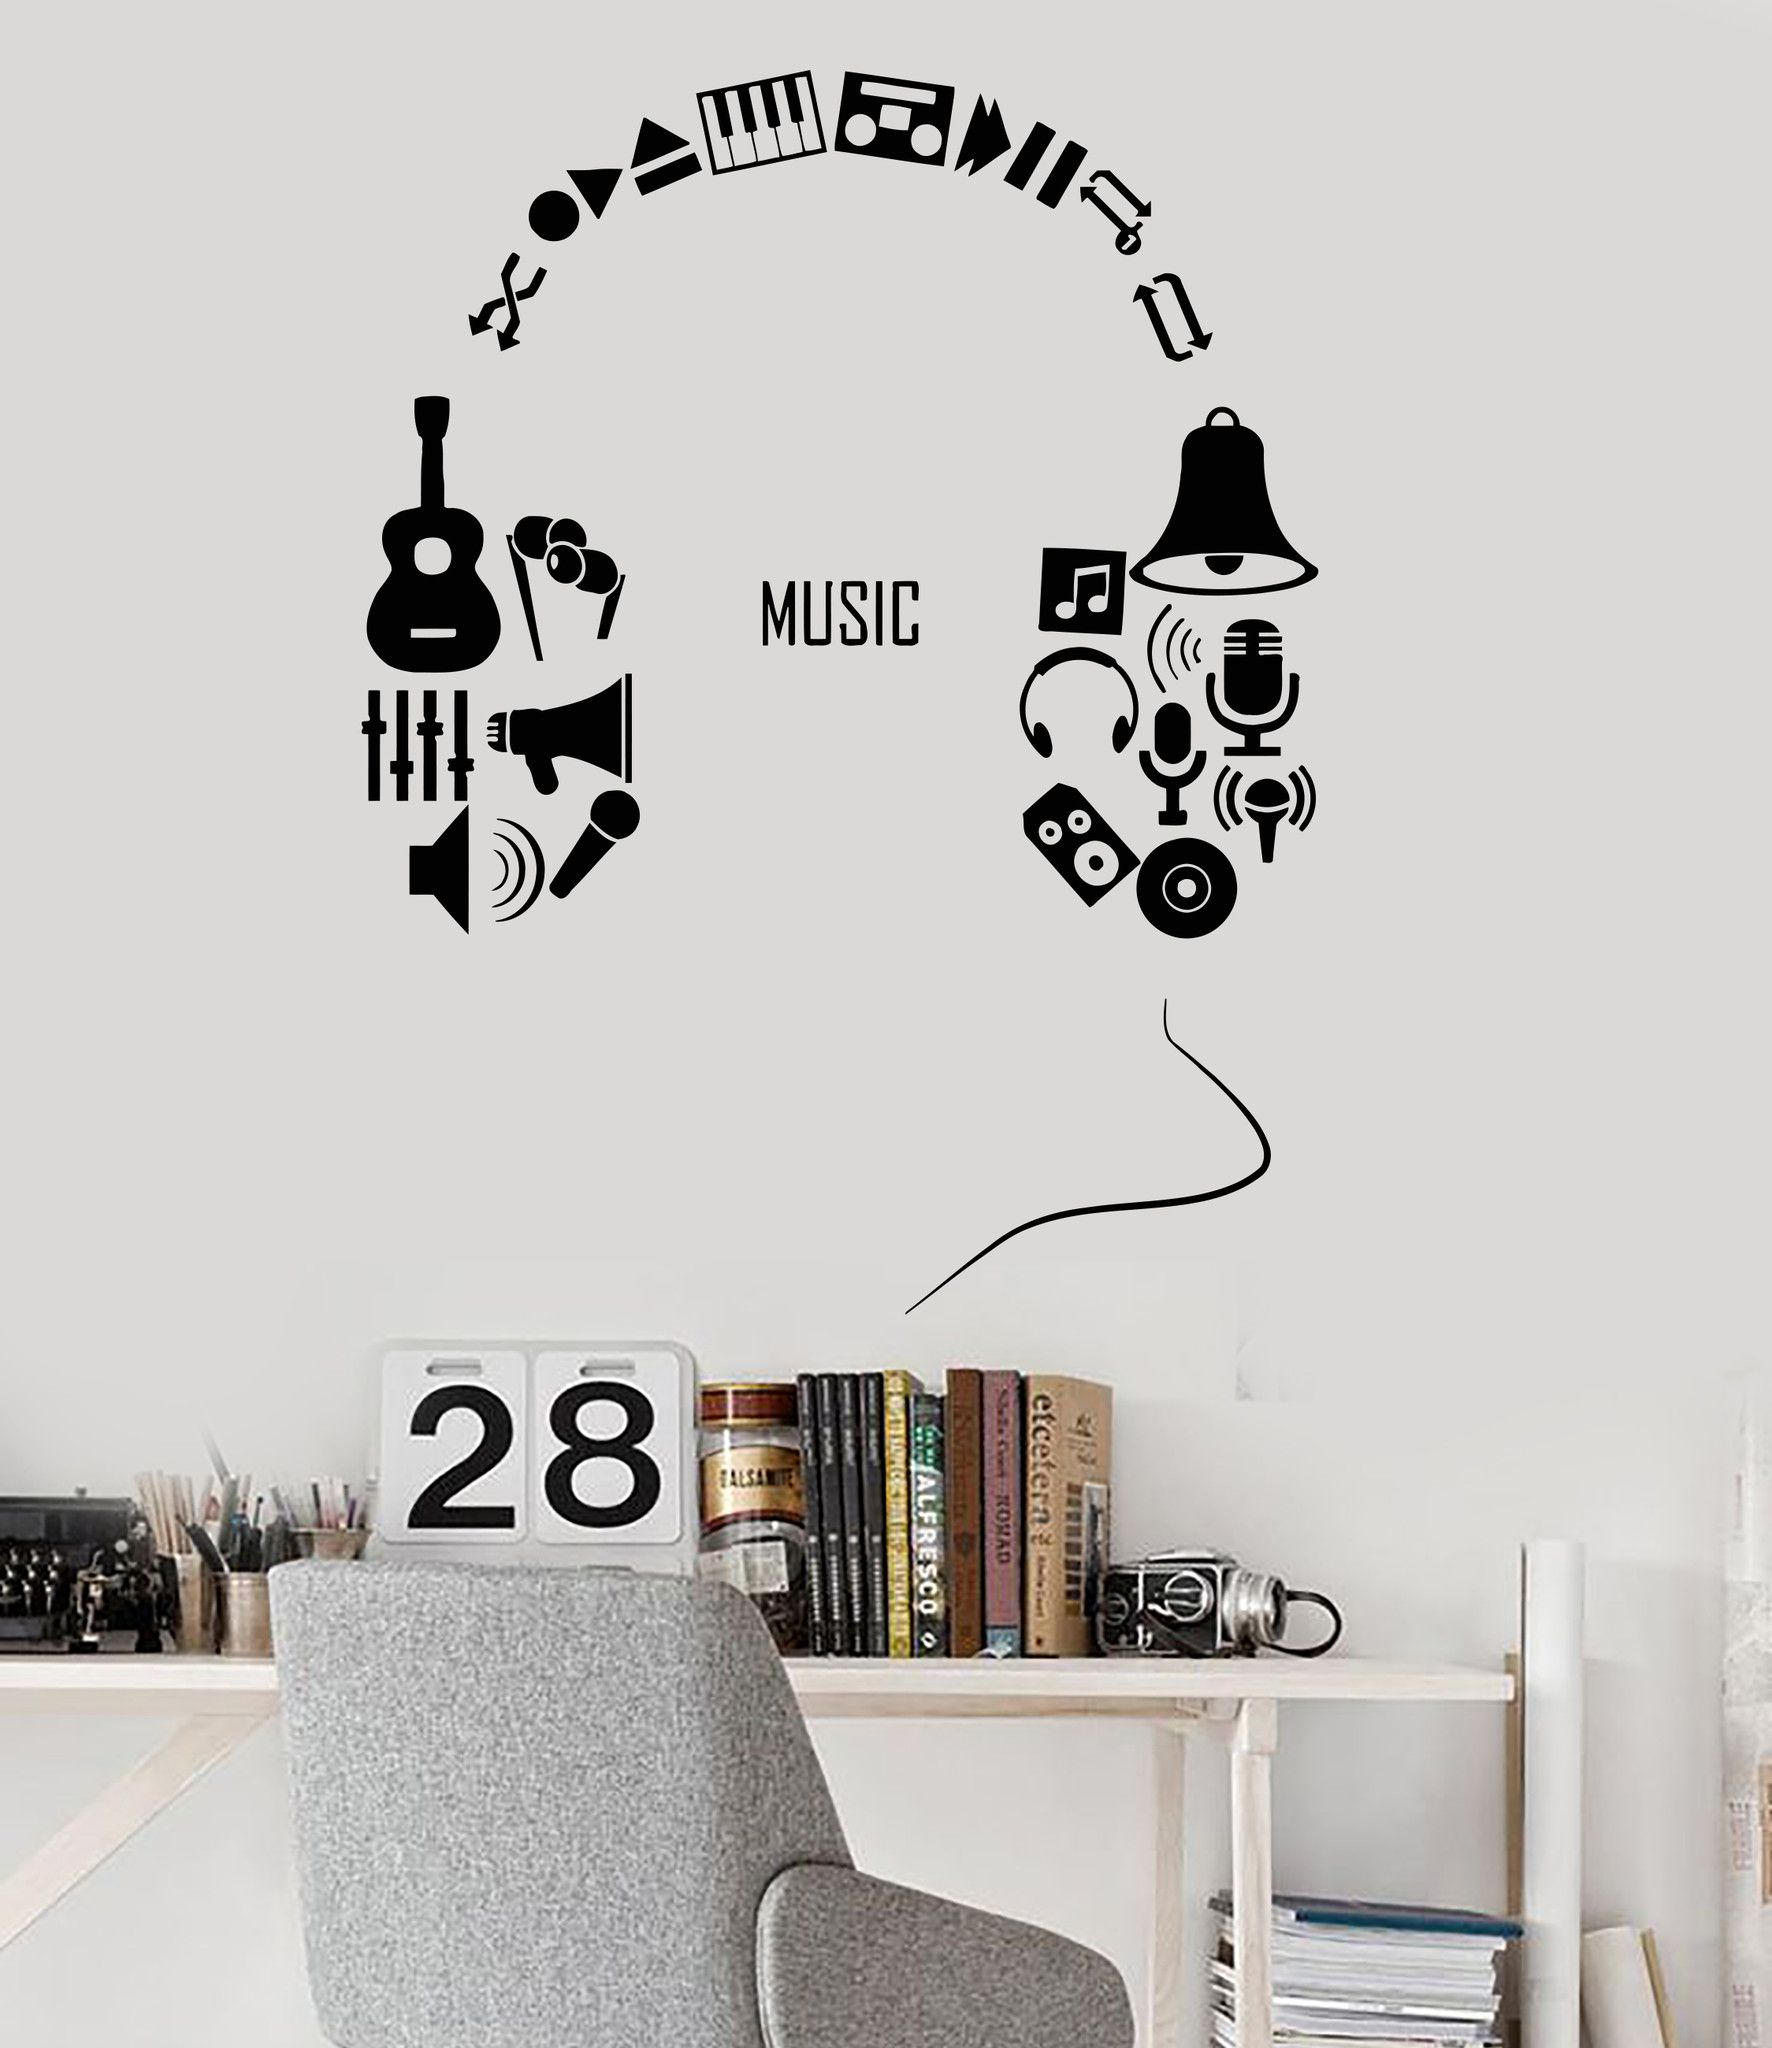 Vinyl wall decal headphones music musical teen room decor stickers vinyl wall decal headphones music musical teen room decor stickers ig3289 amipublicfo Gallery